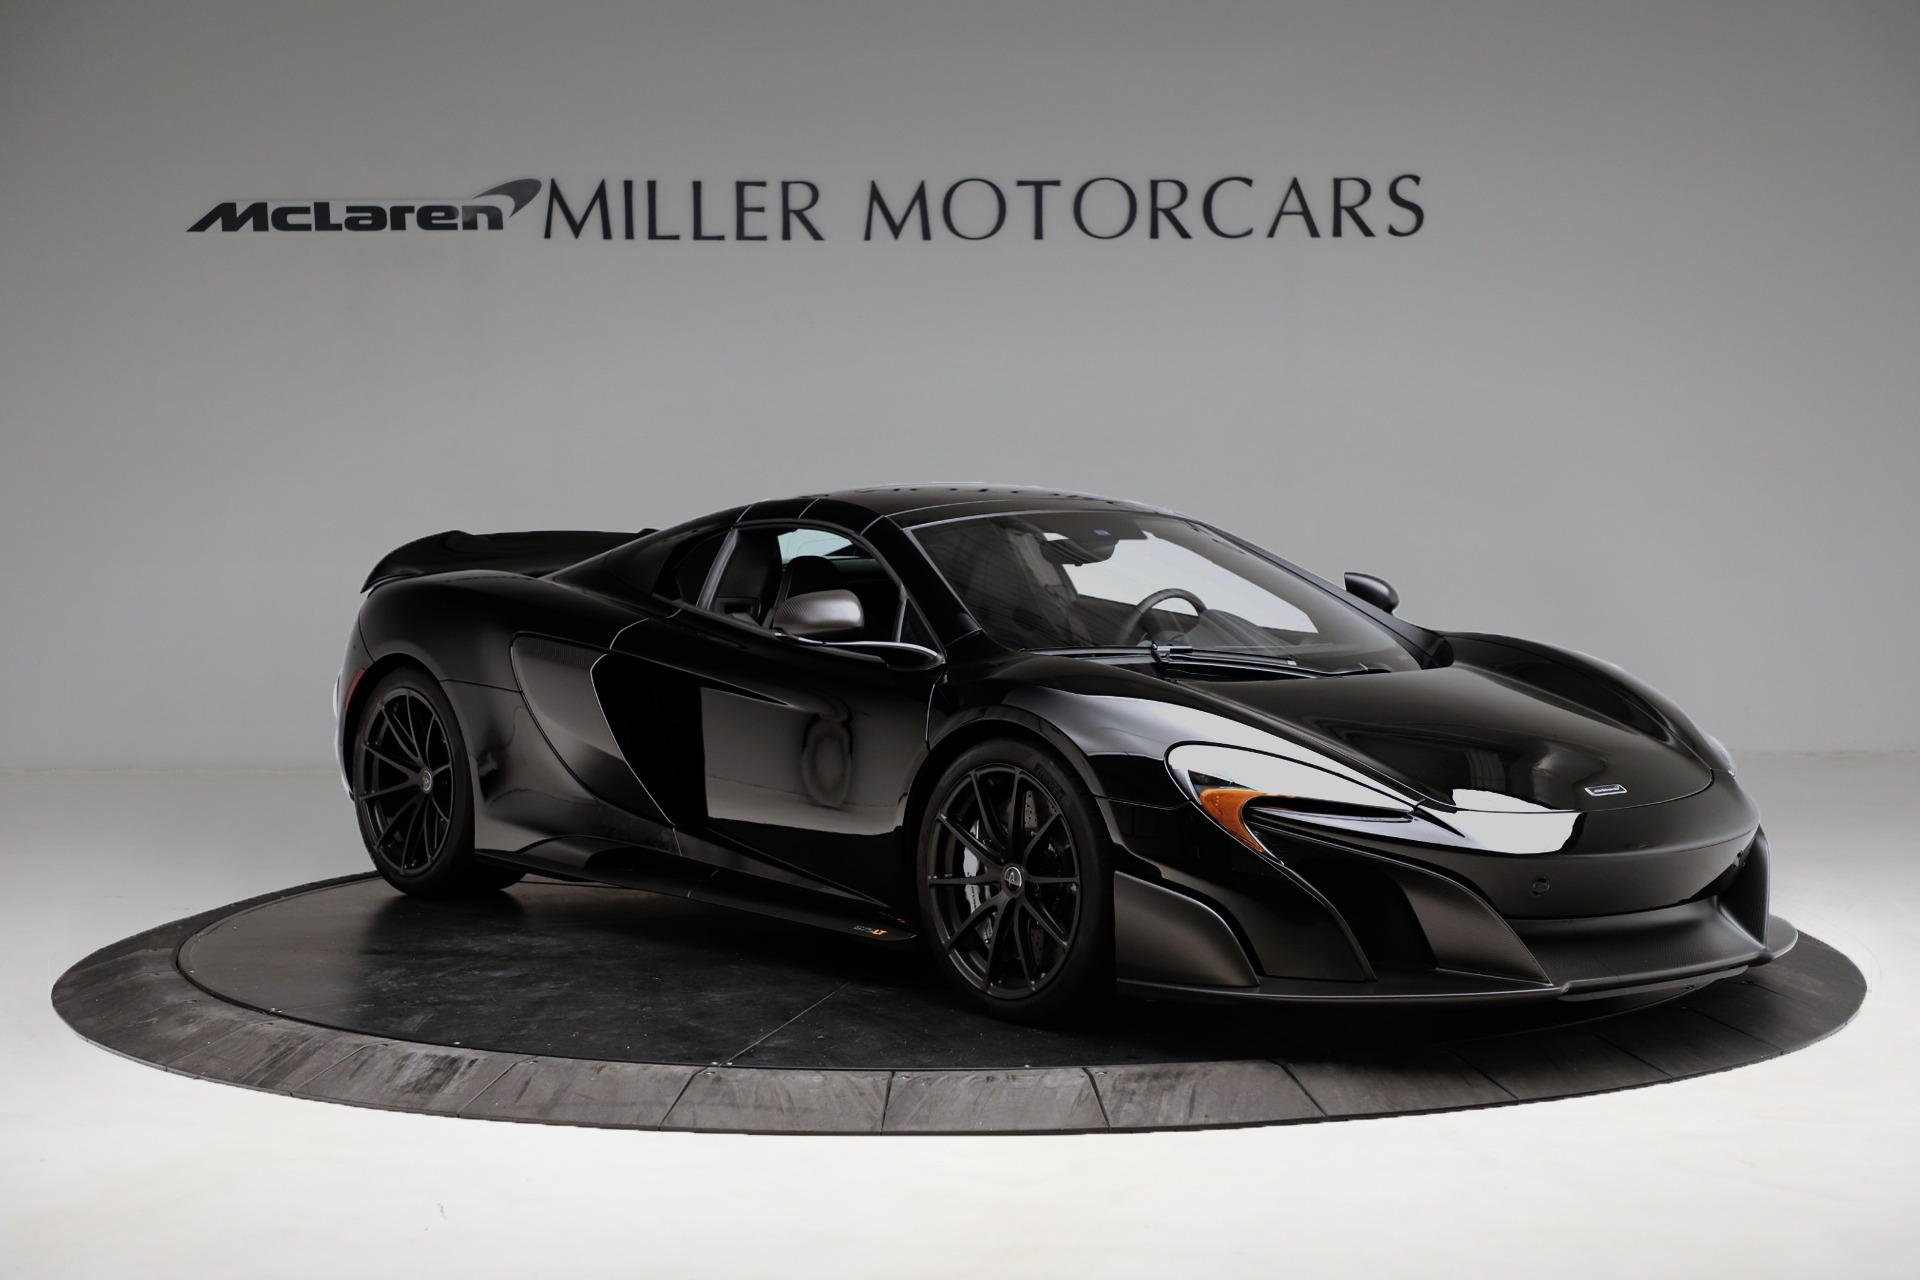 Used 2016 McLaren 675LT Spider For Sale In Westport, CT 3455_p18